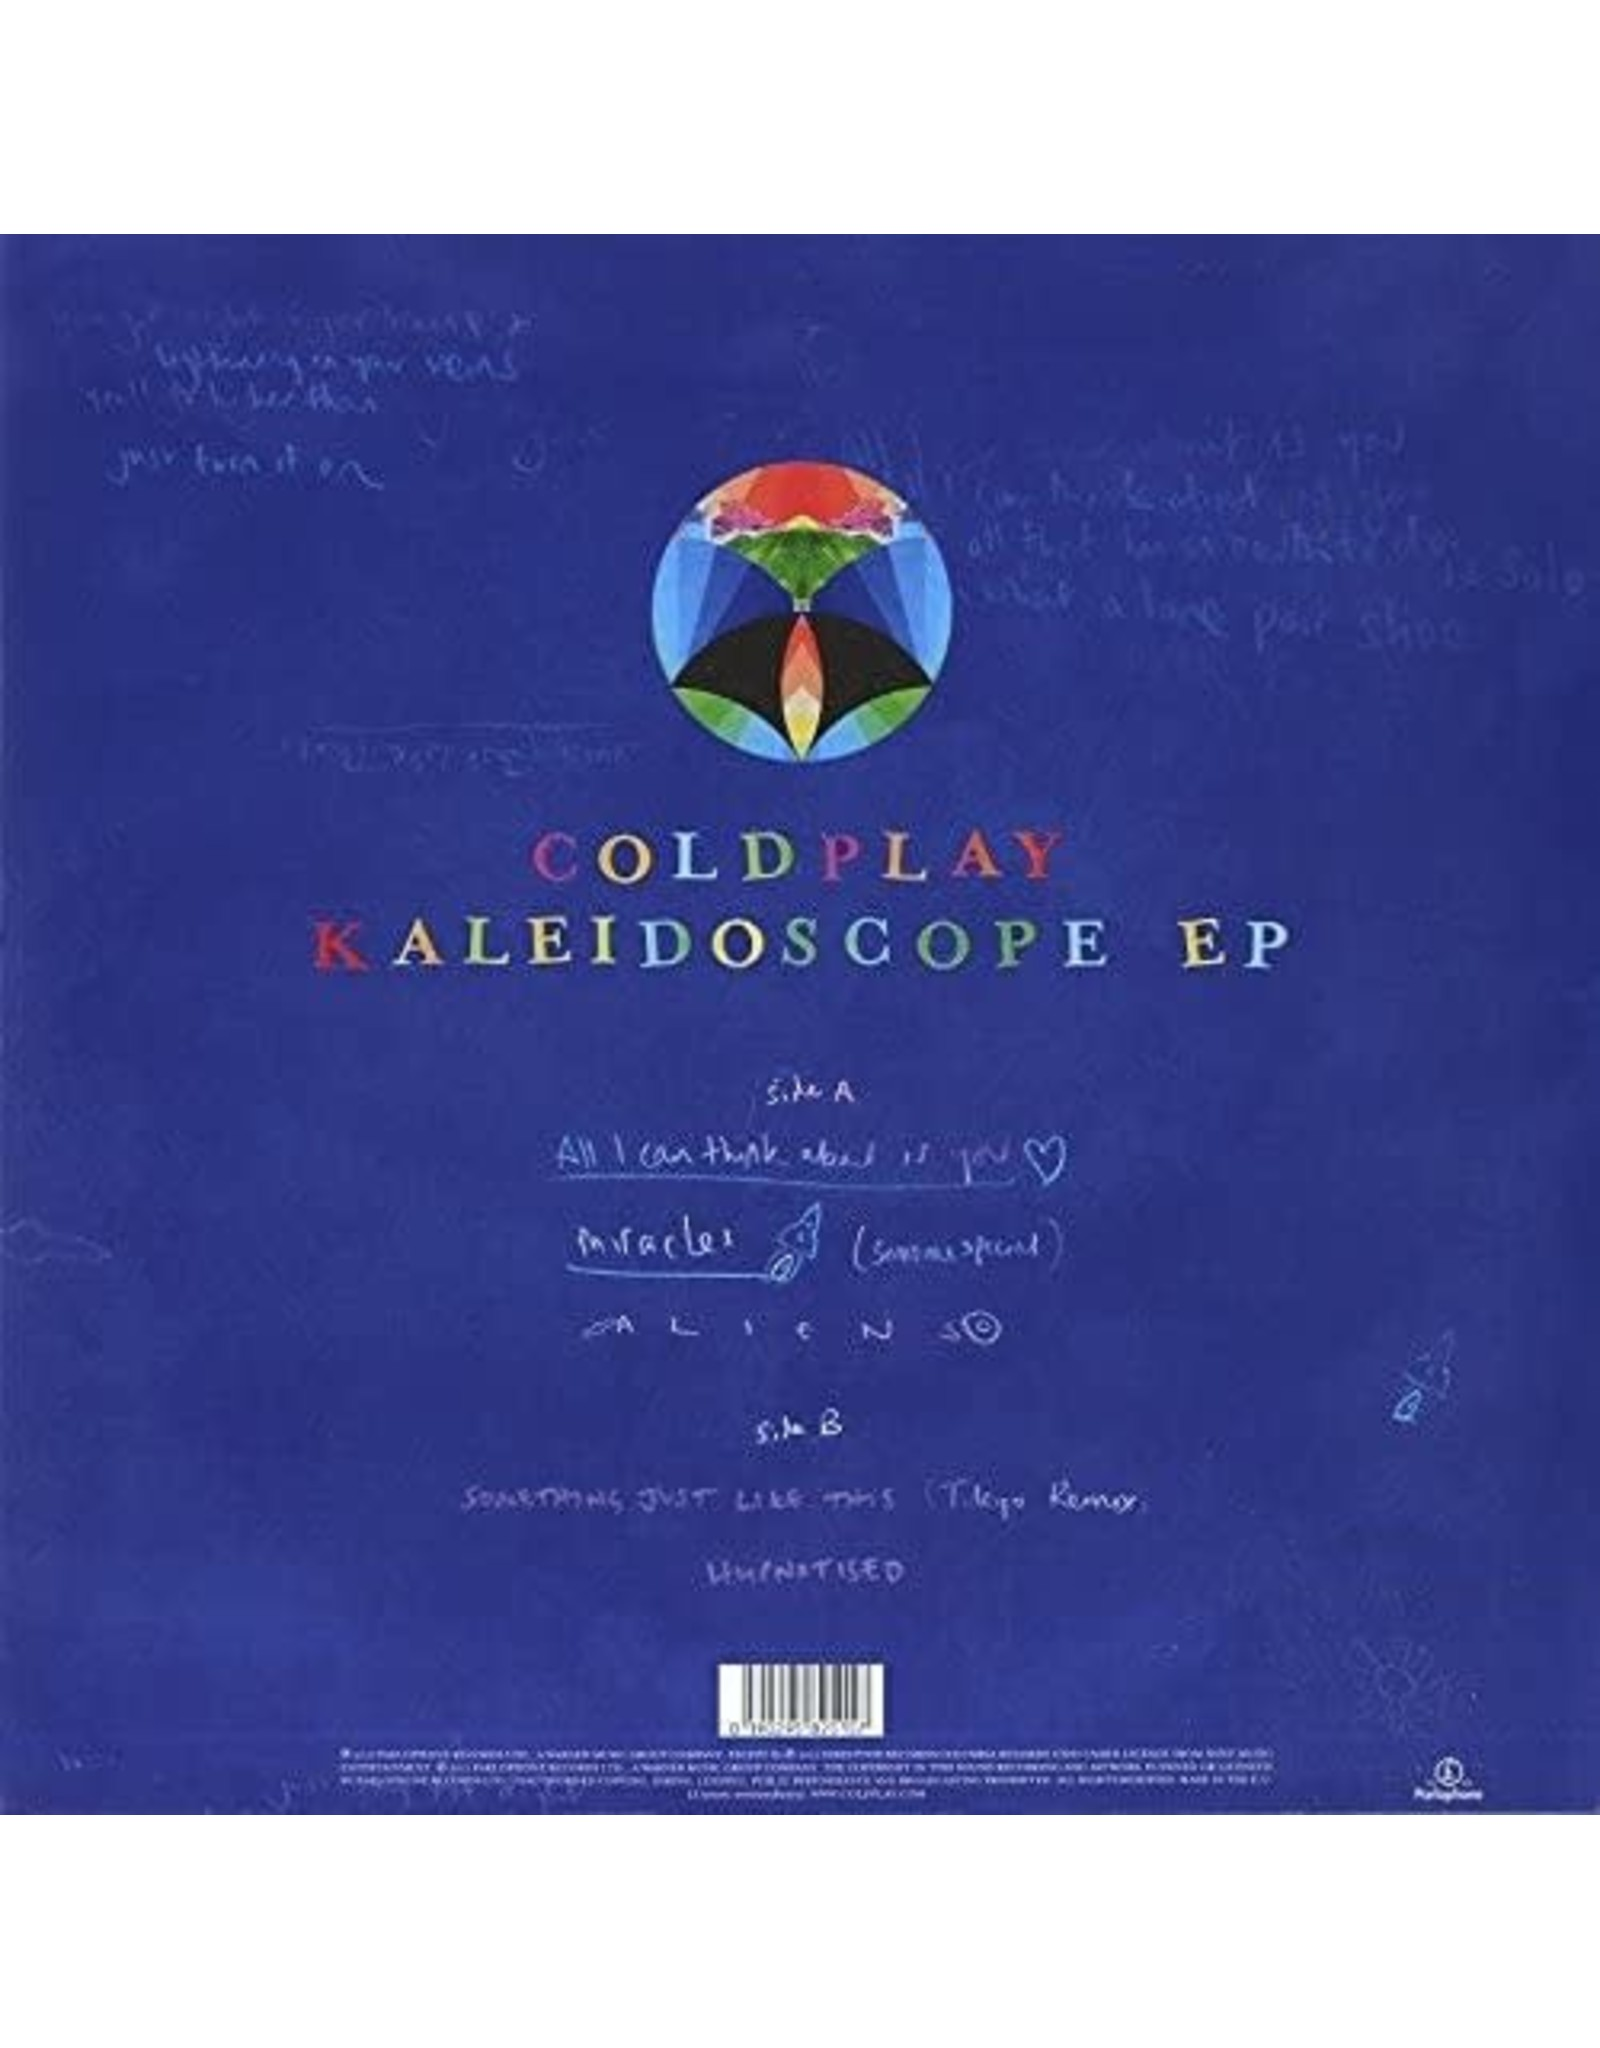 Coldplay - Kaleidoscope EP (Blue Vinyl)